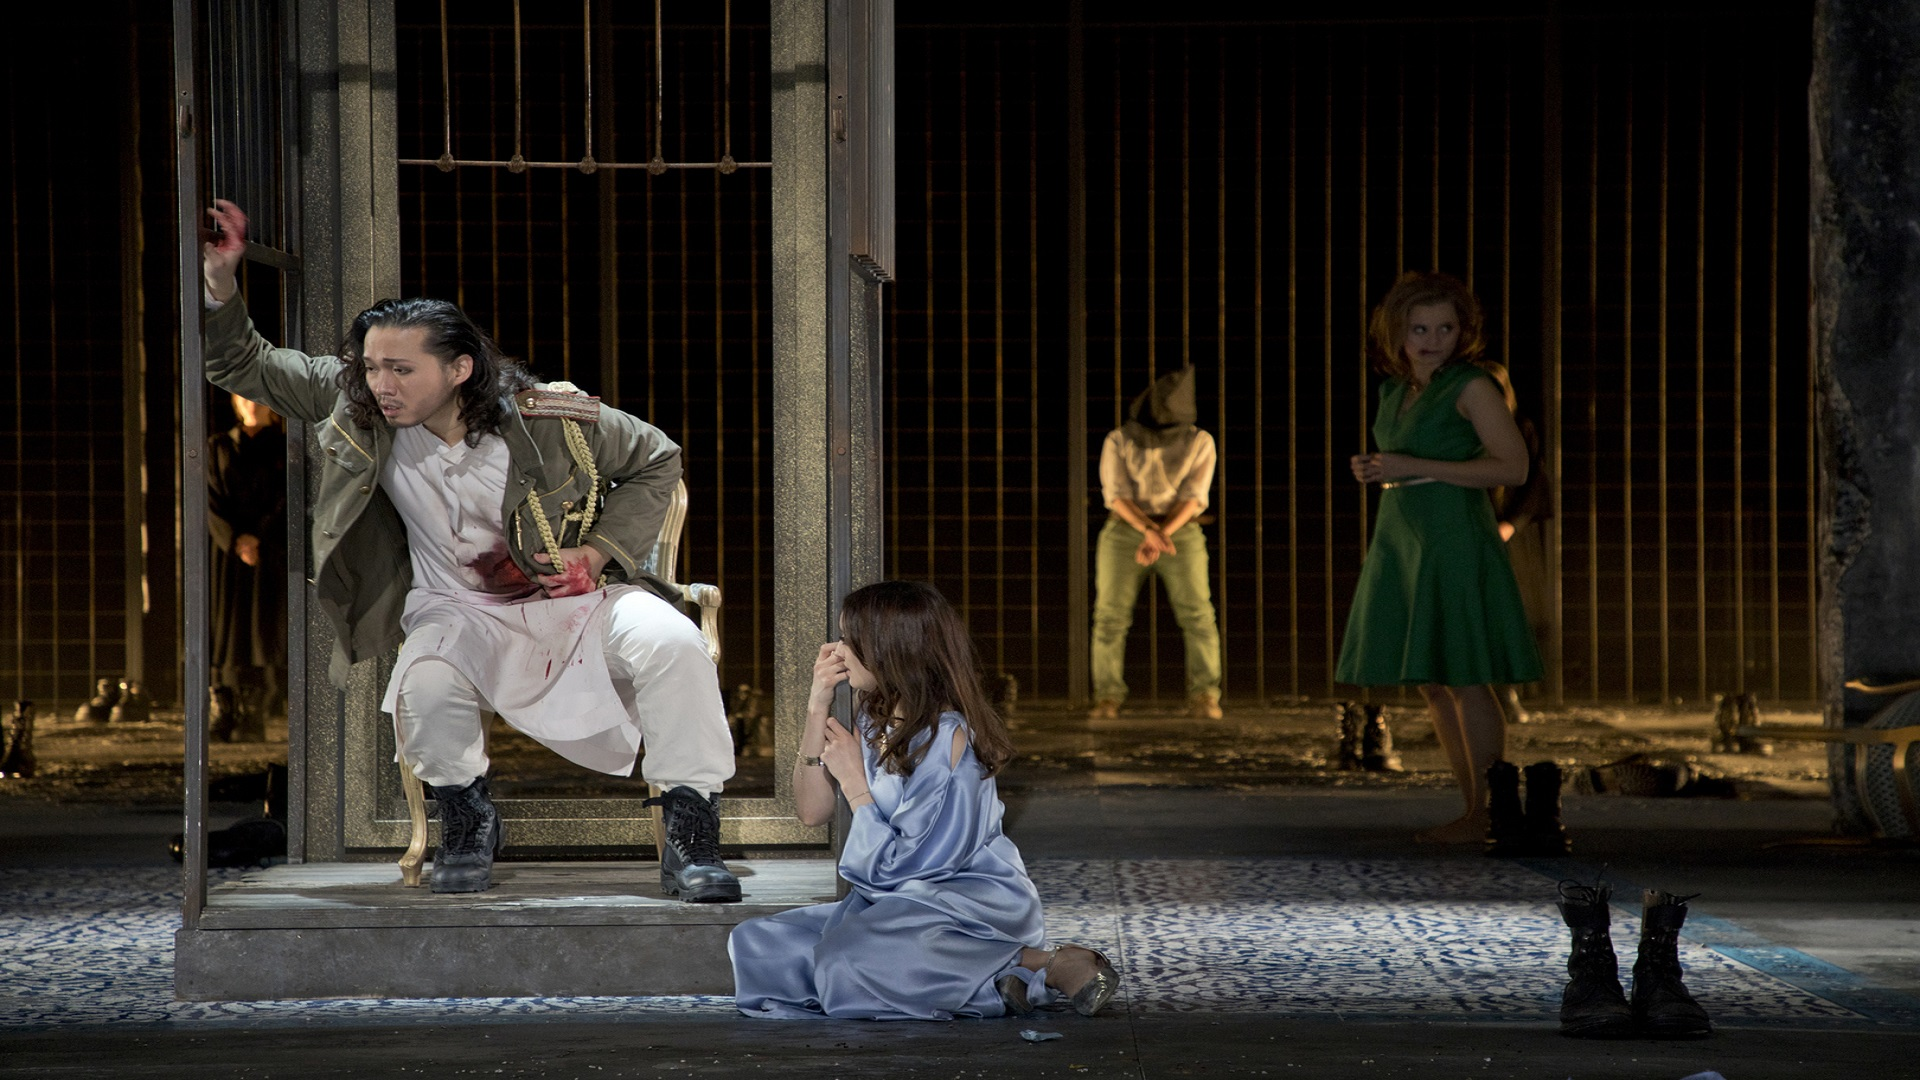 Mitridate-Opera-by-Porpora-Stage-Director-Jacopo-Spirei-12